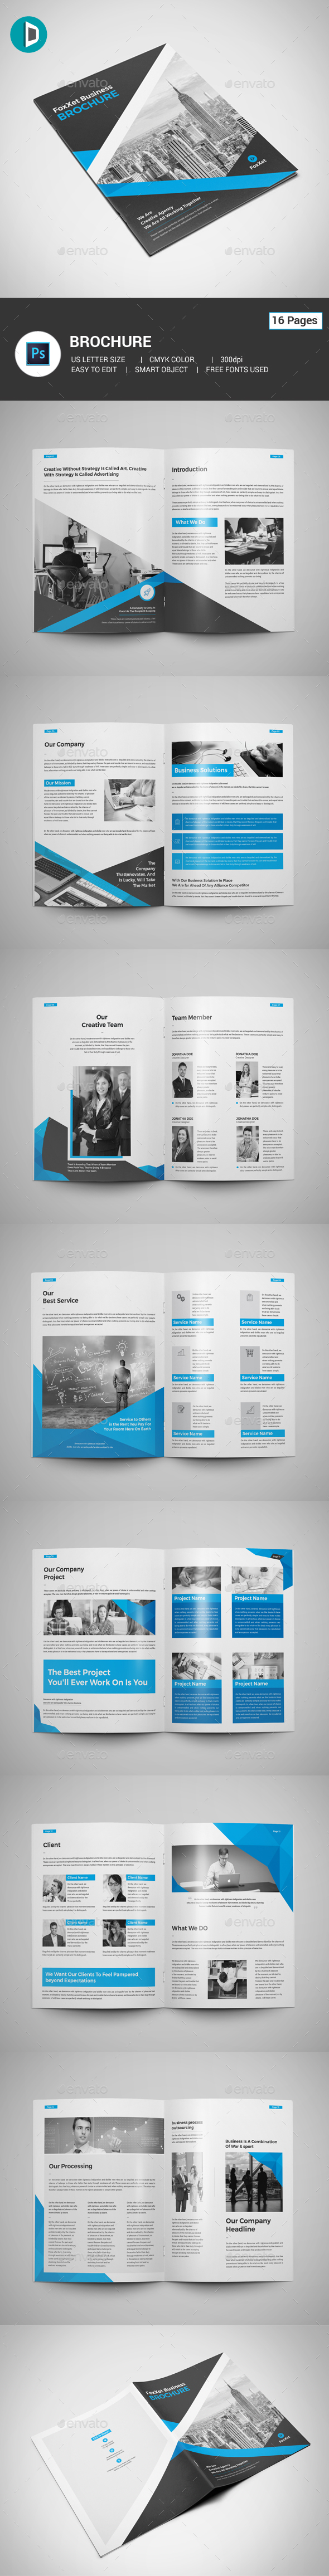 GraphicRiver Brochure 21110308